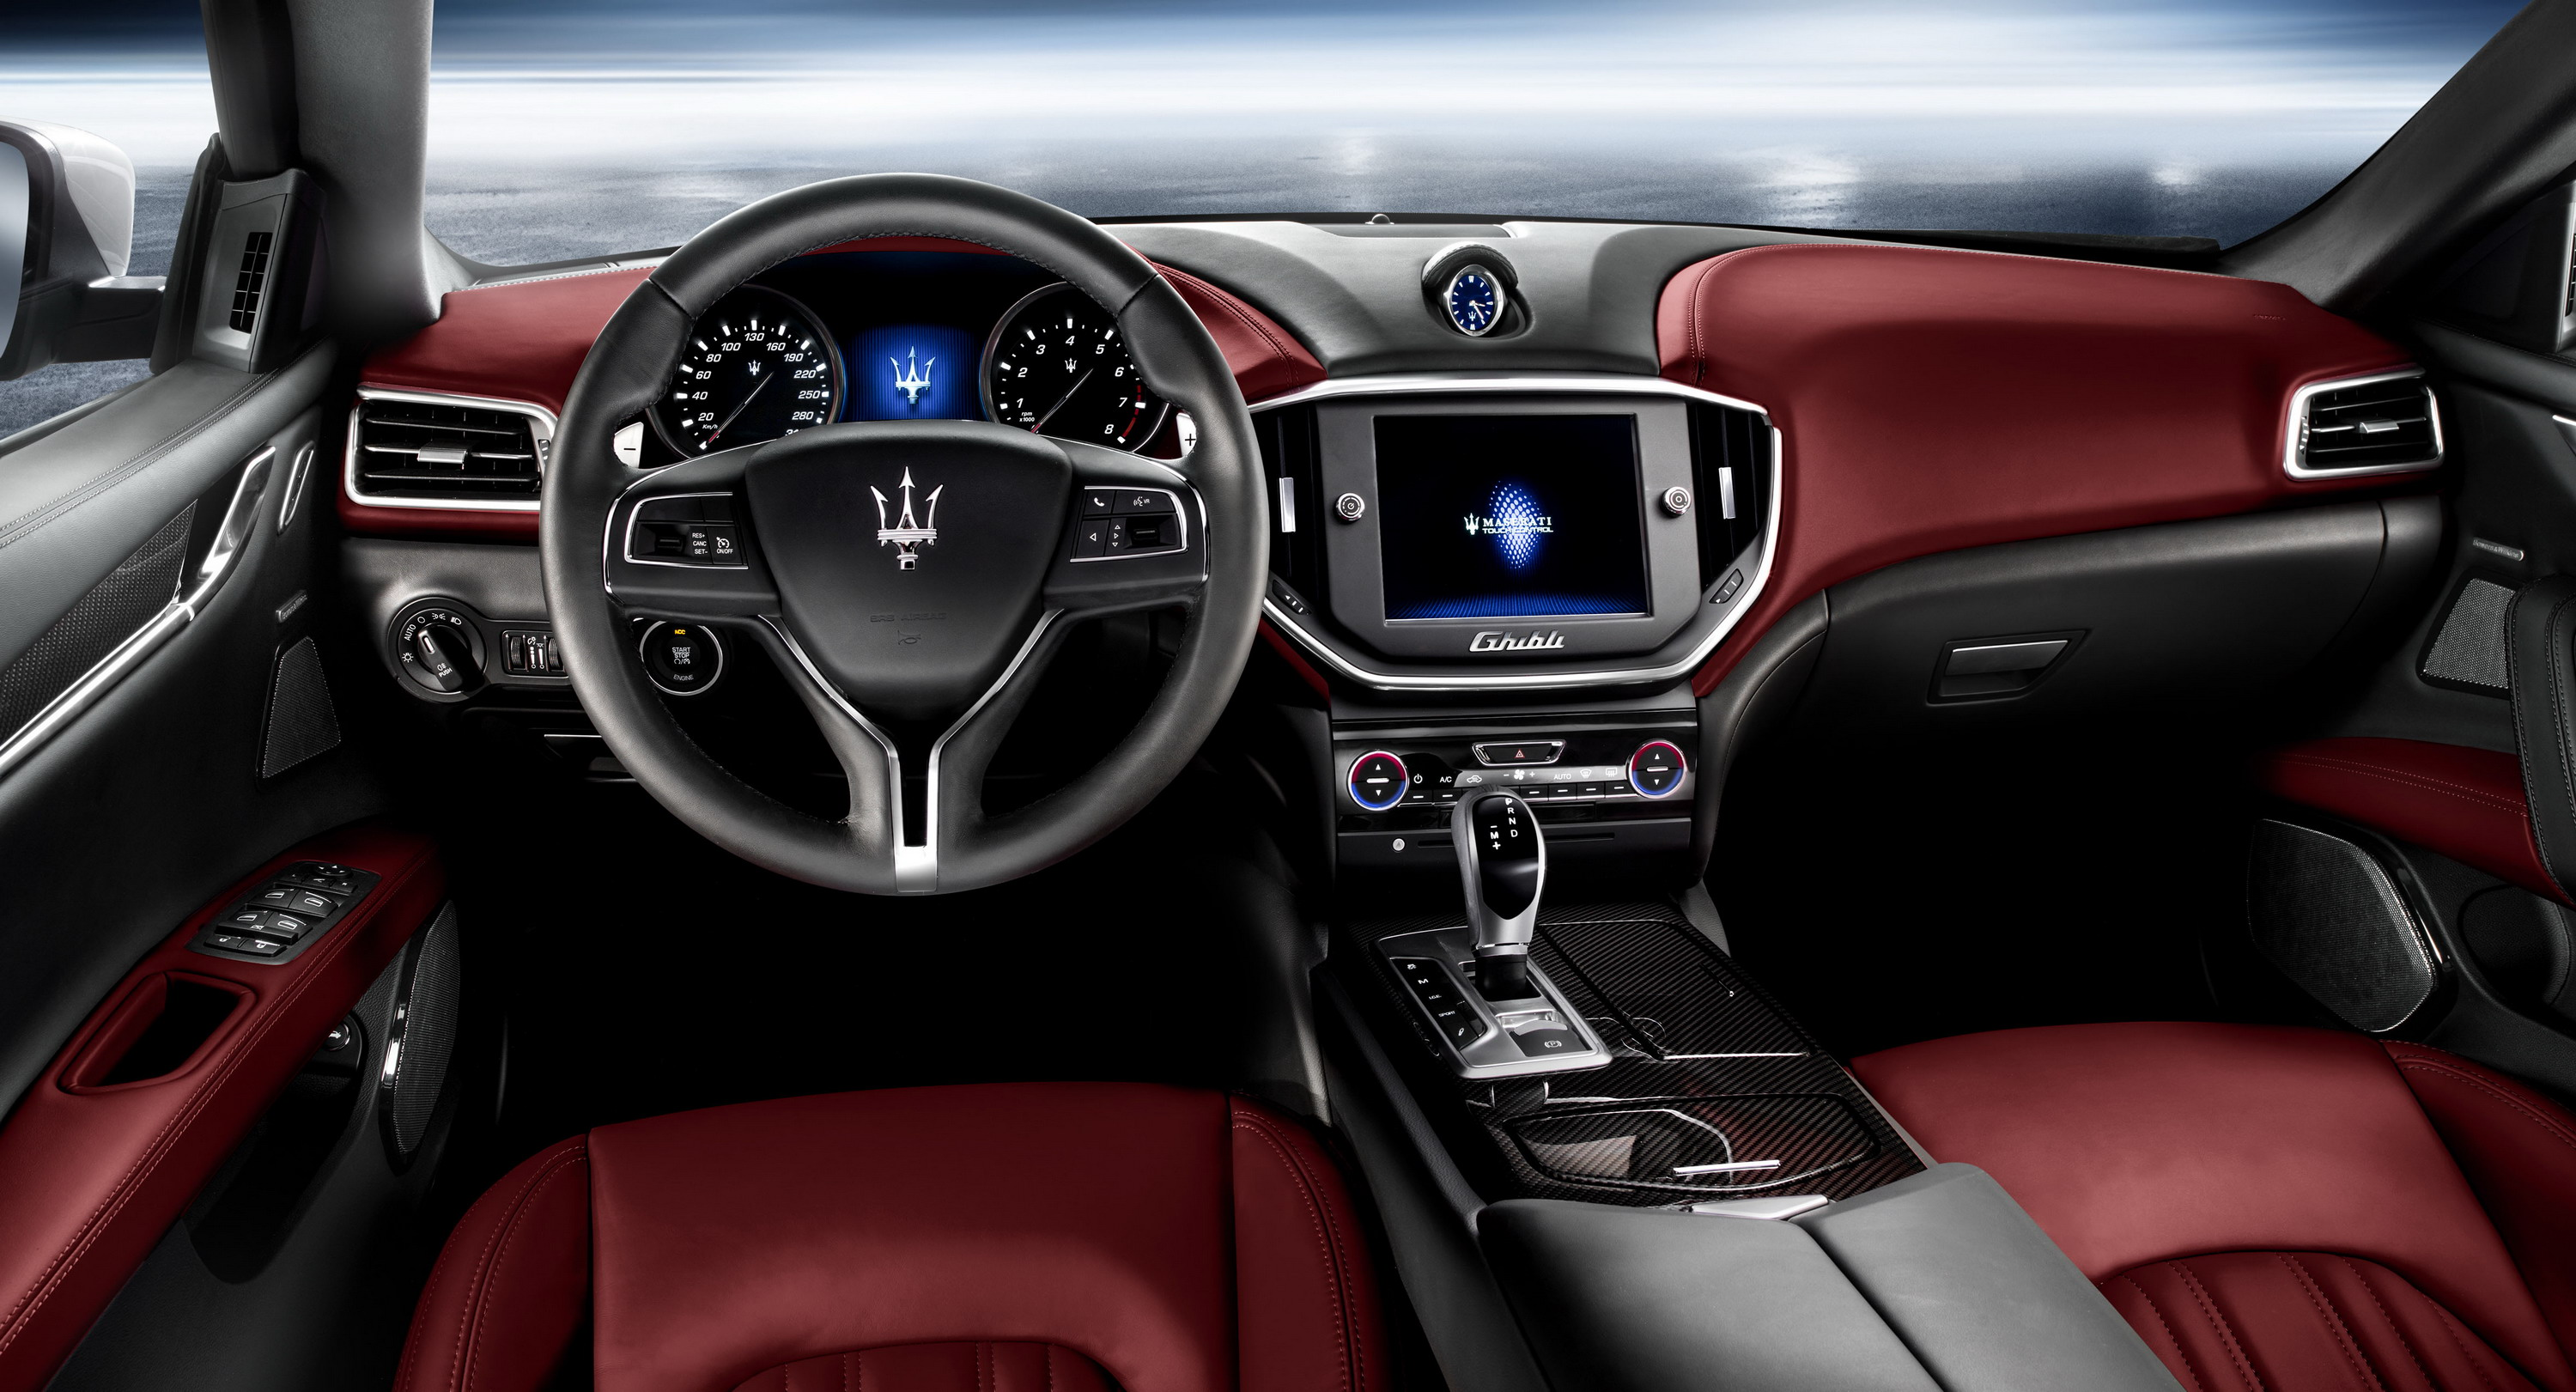 2015 Maserati Ghibli 0 60 Car Tech